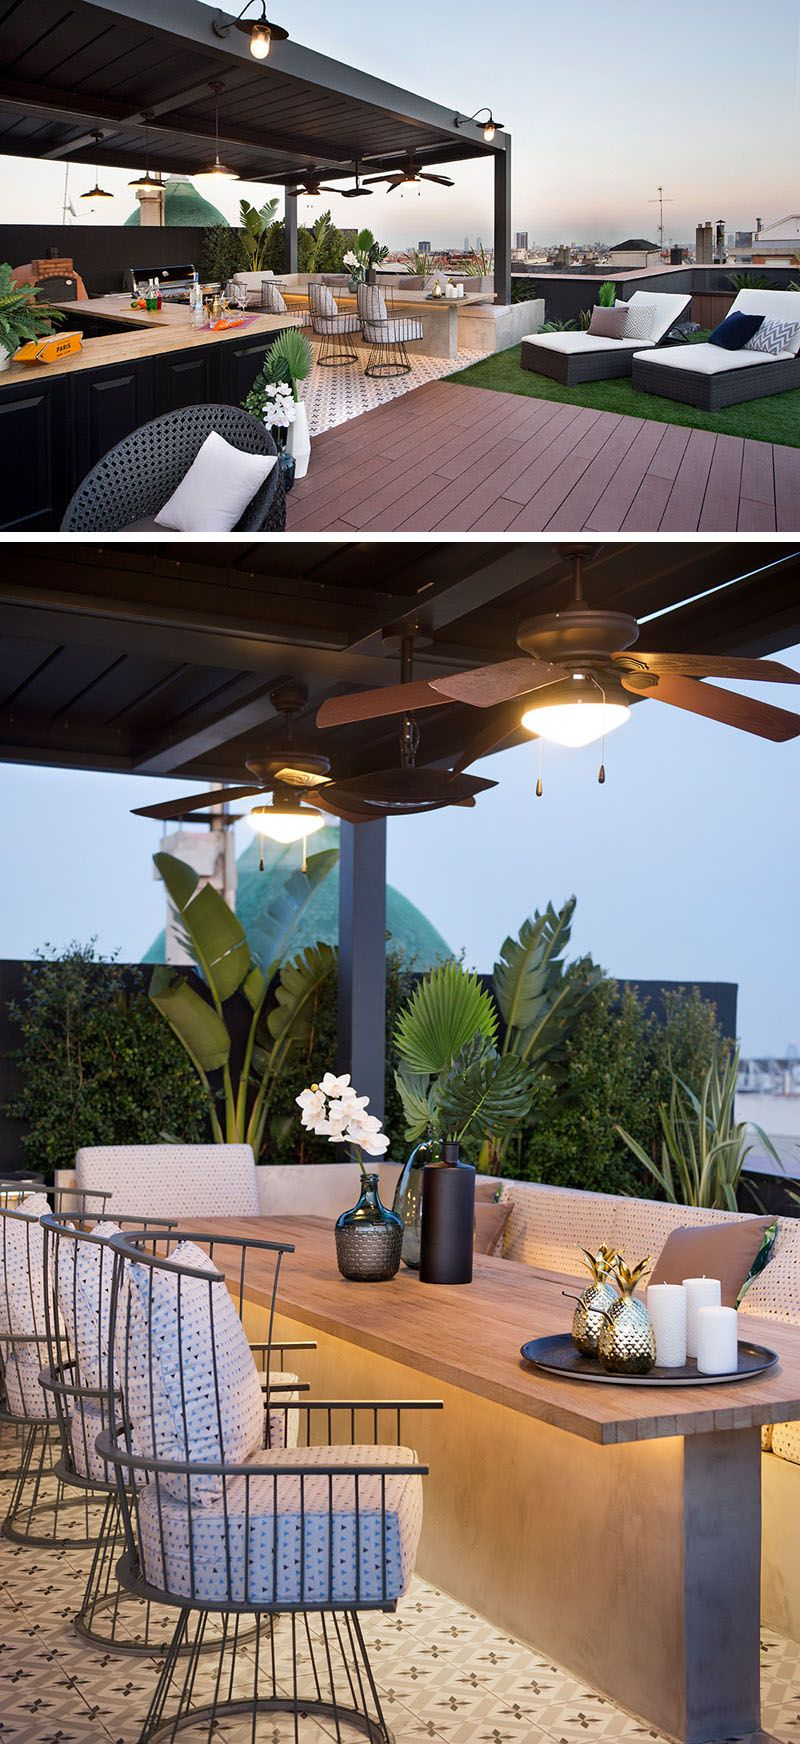 This Apartment In Barcelona Was Completed With A Rooftop Entertaining Space With Images Rooftop Terrace Design Rooftop Design Outdoor Kitchen Bars